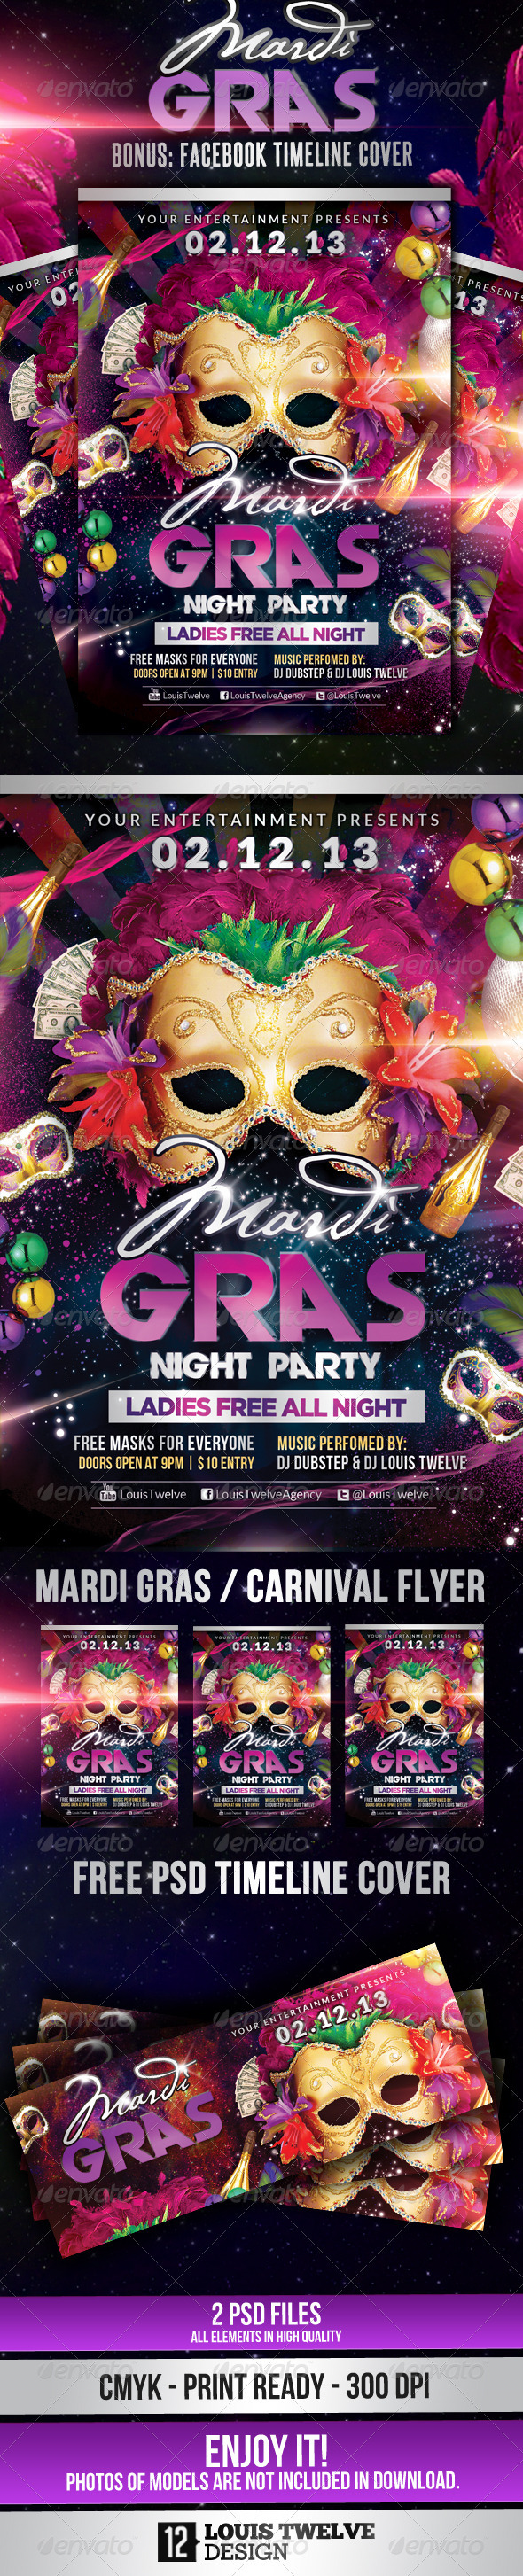 gras carnival party flyer facebook timeliine cover about this flyer ...